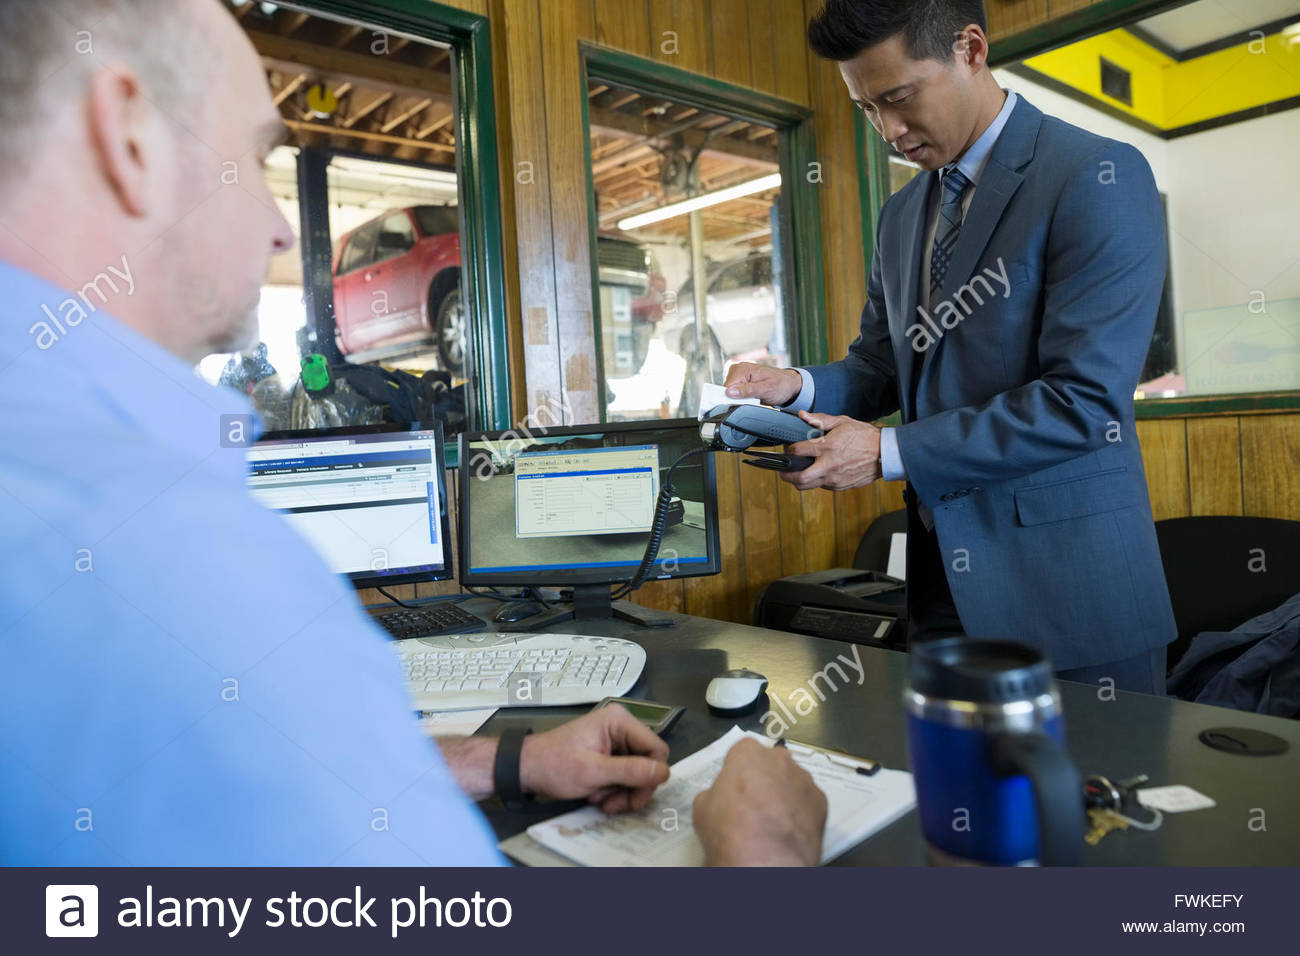 Customer using credit card reader auto shop office - Stock Image